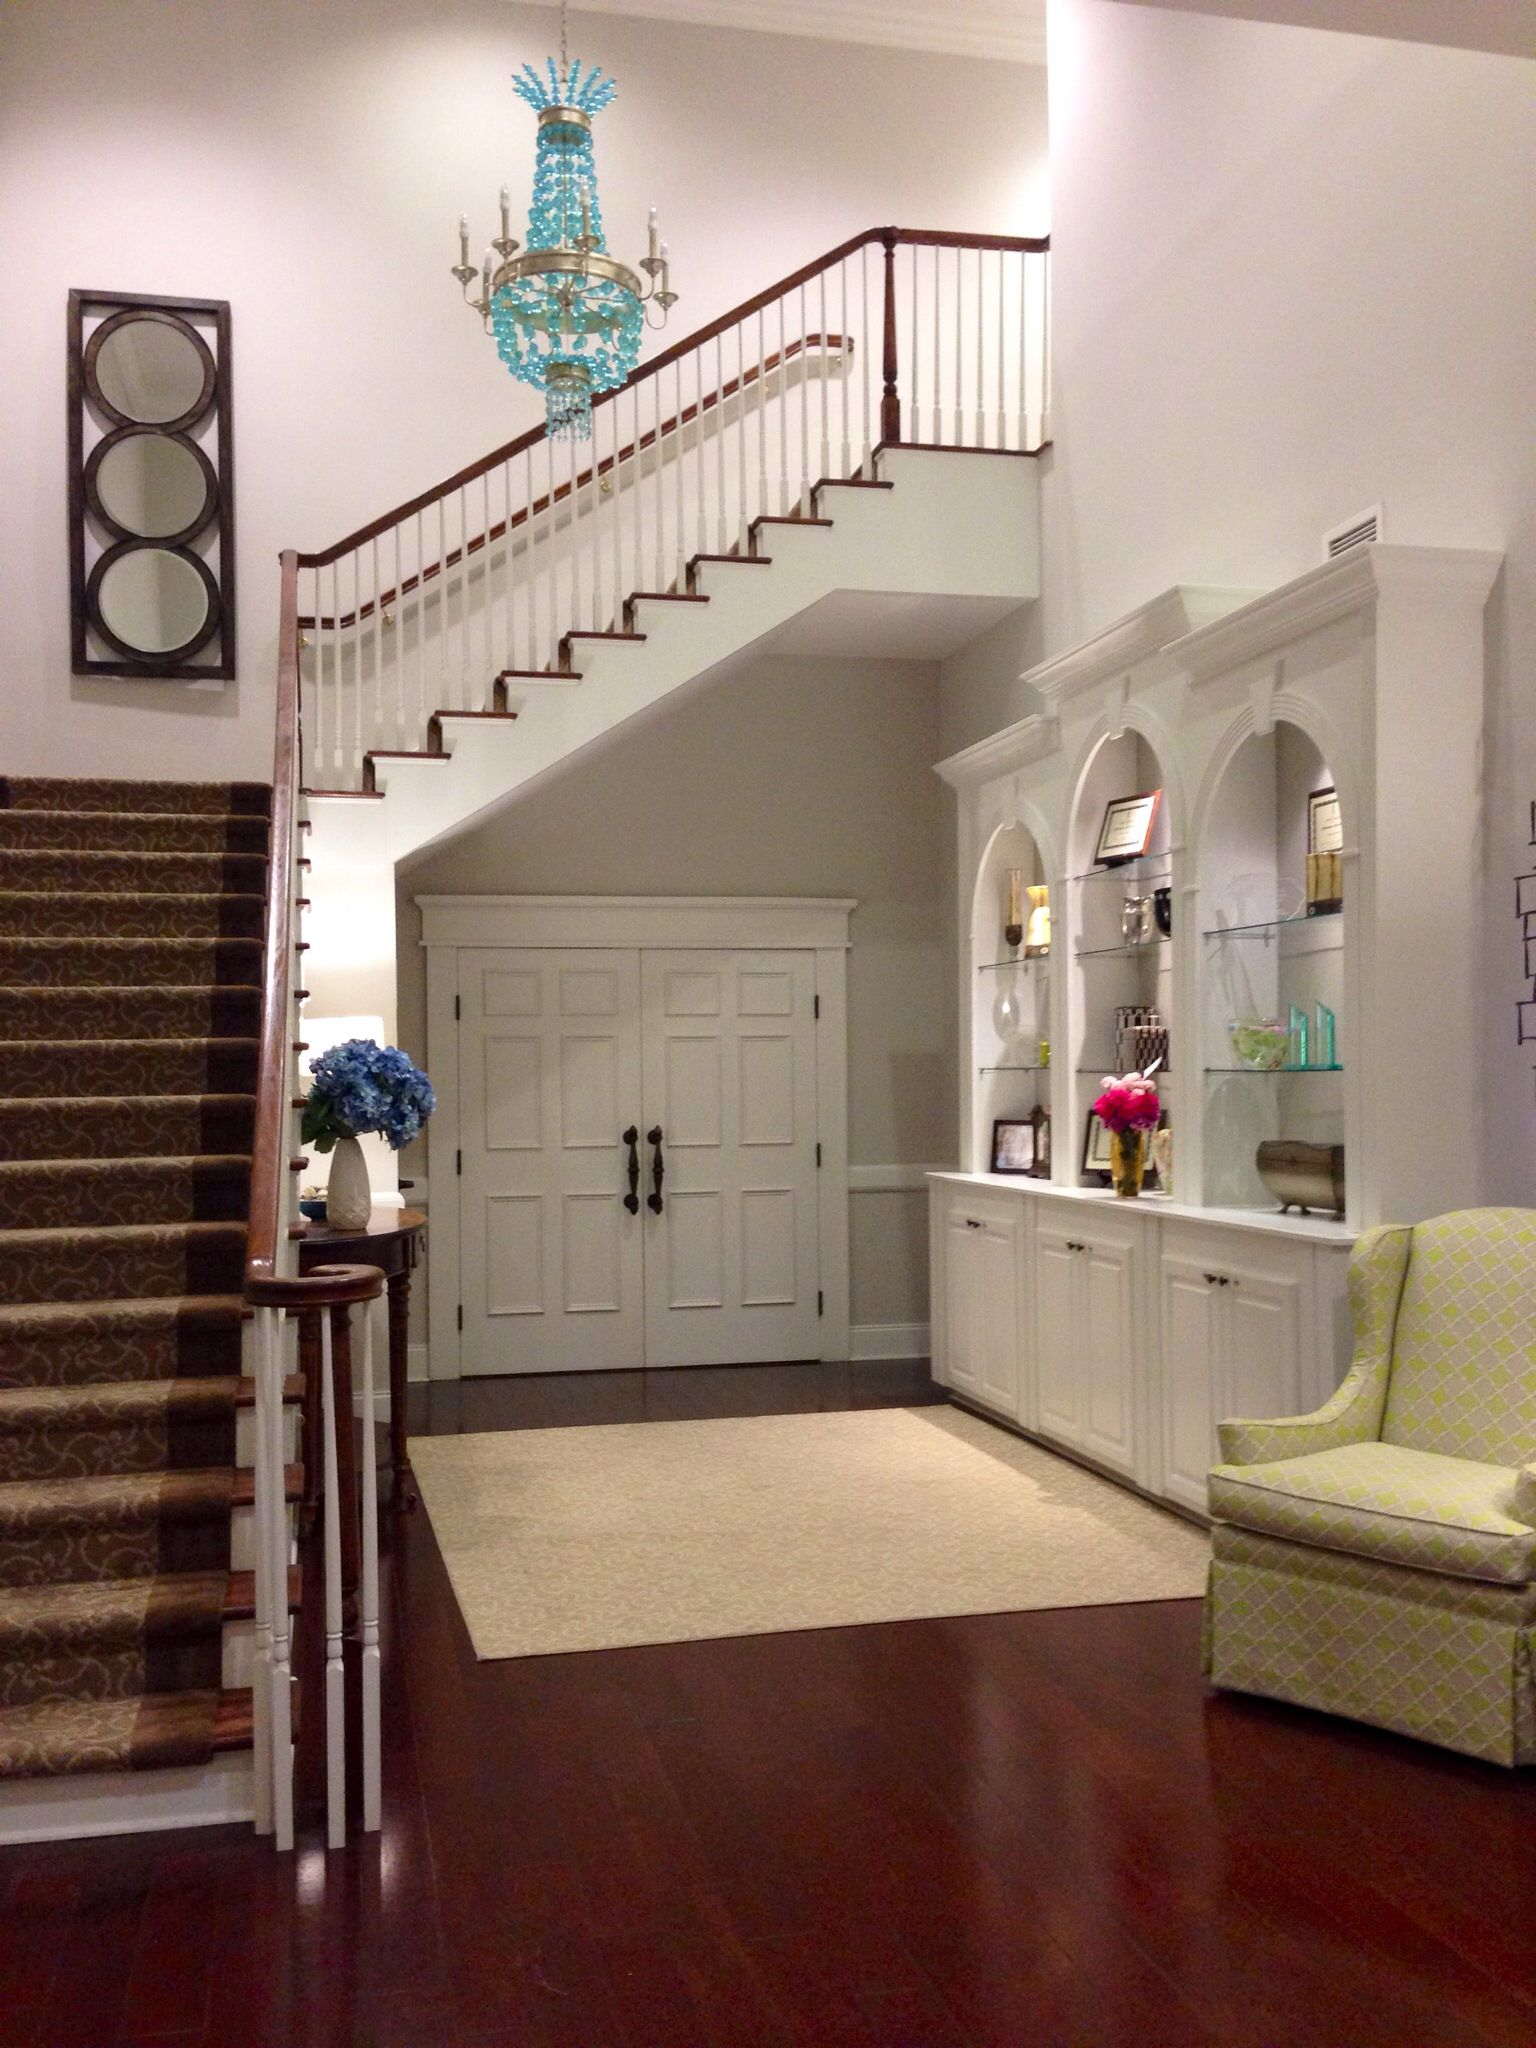 House Foyer University : Our beautiful foyer u of sc gamma phi beta home sweet